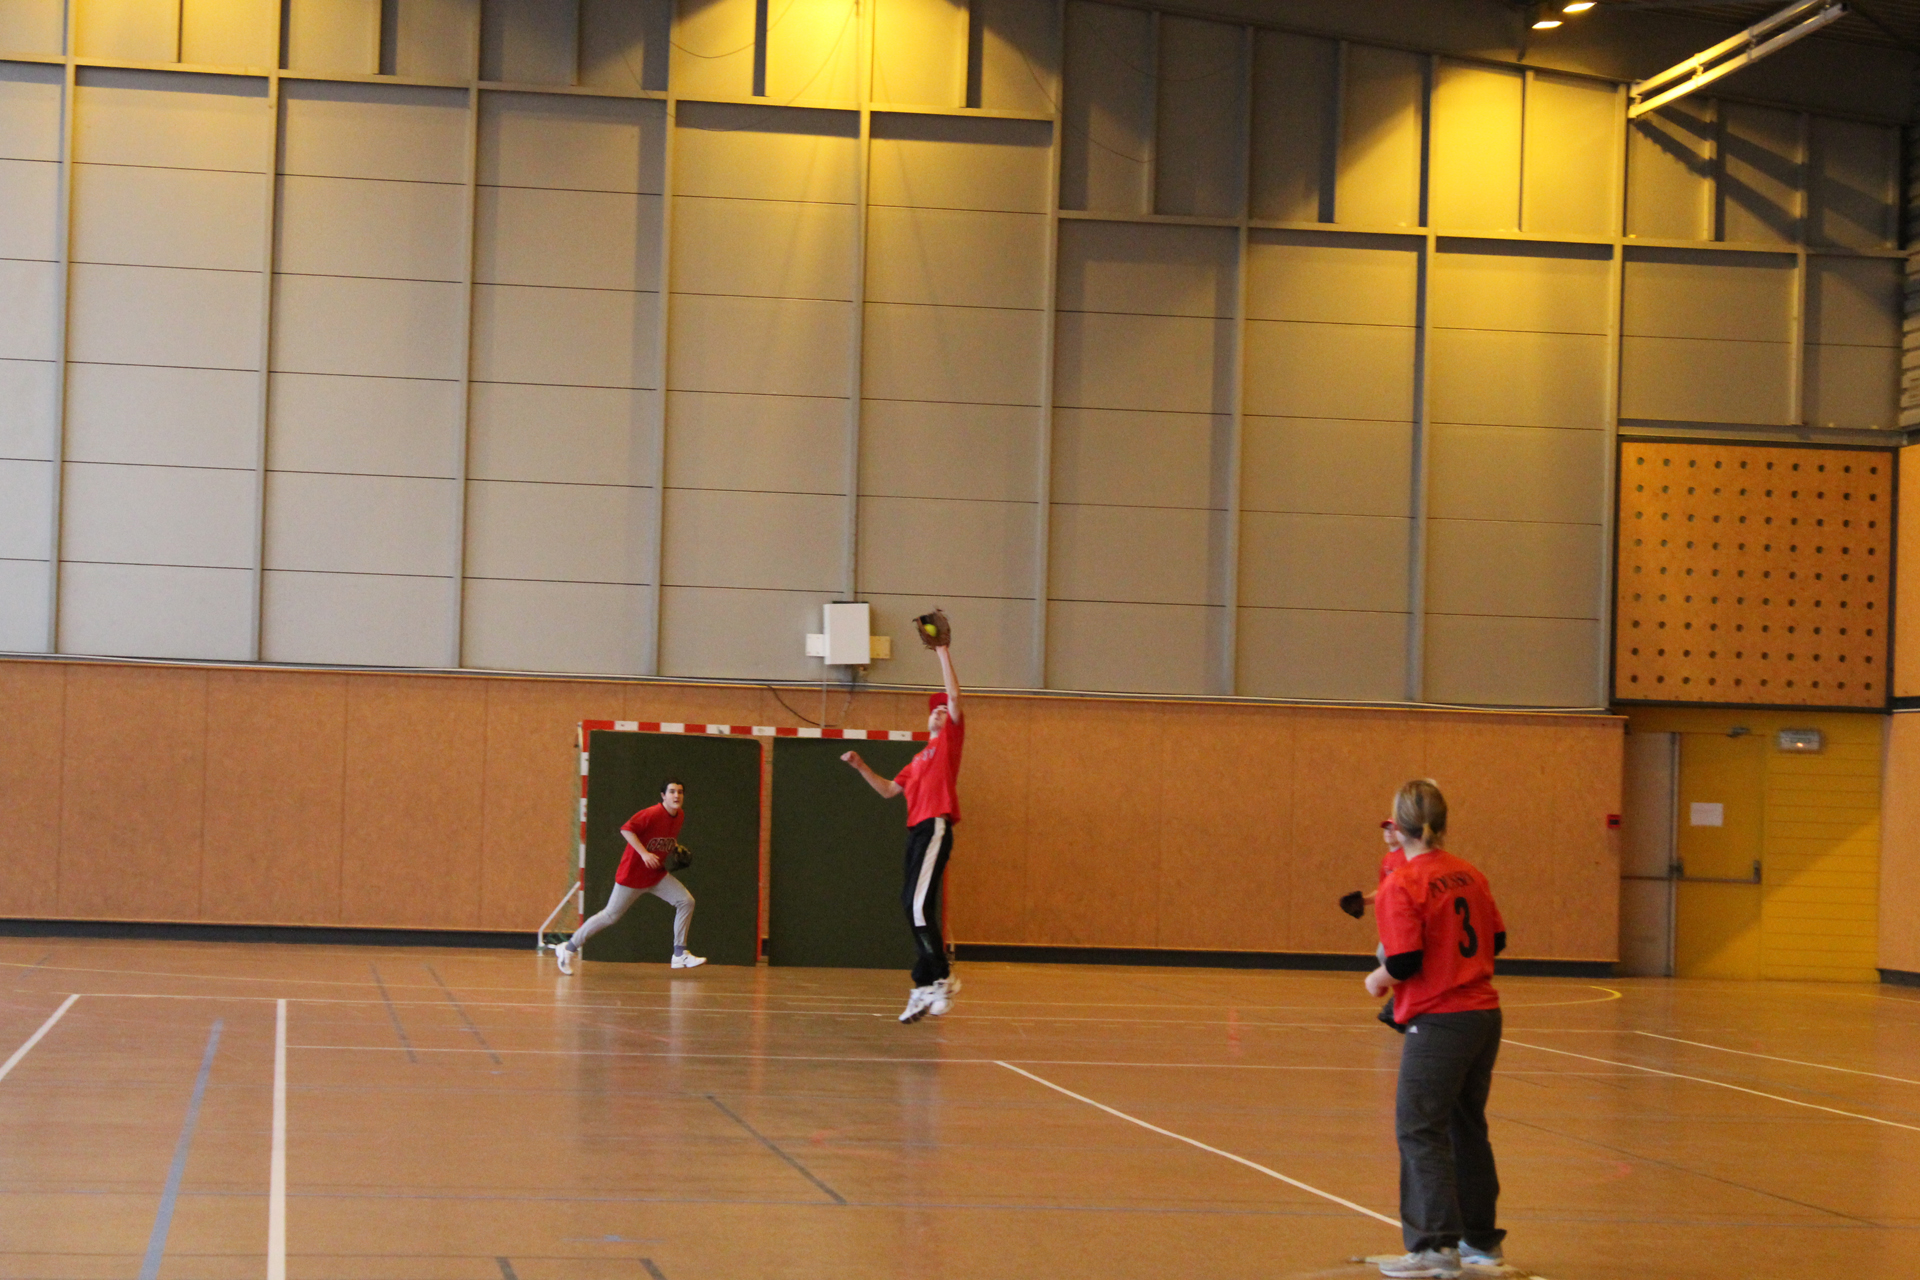 2011-02-06 Soft Mixte Indoor a Cergy (47)-resize